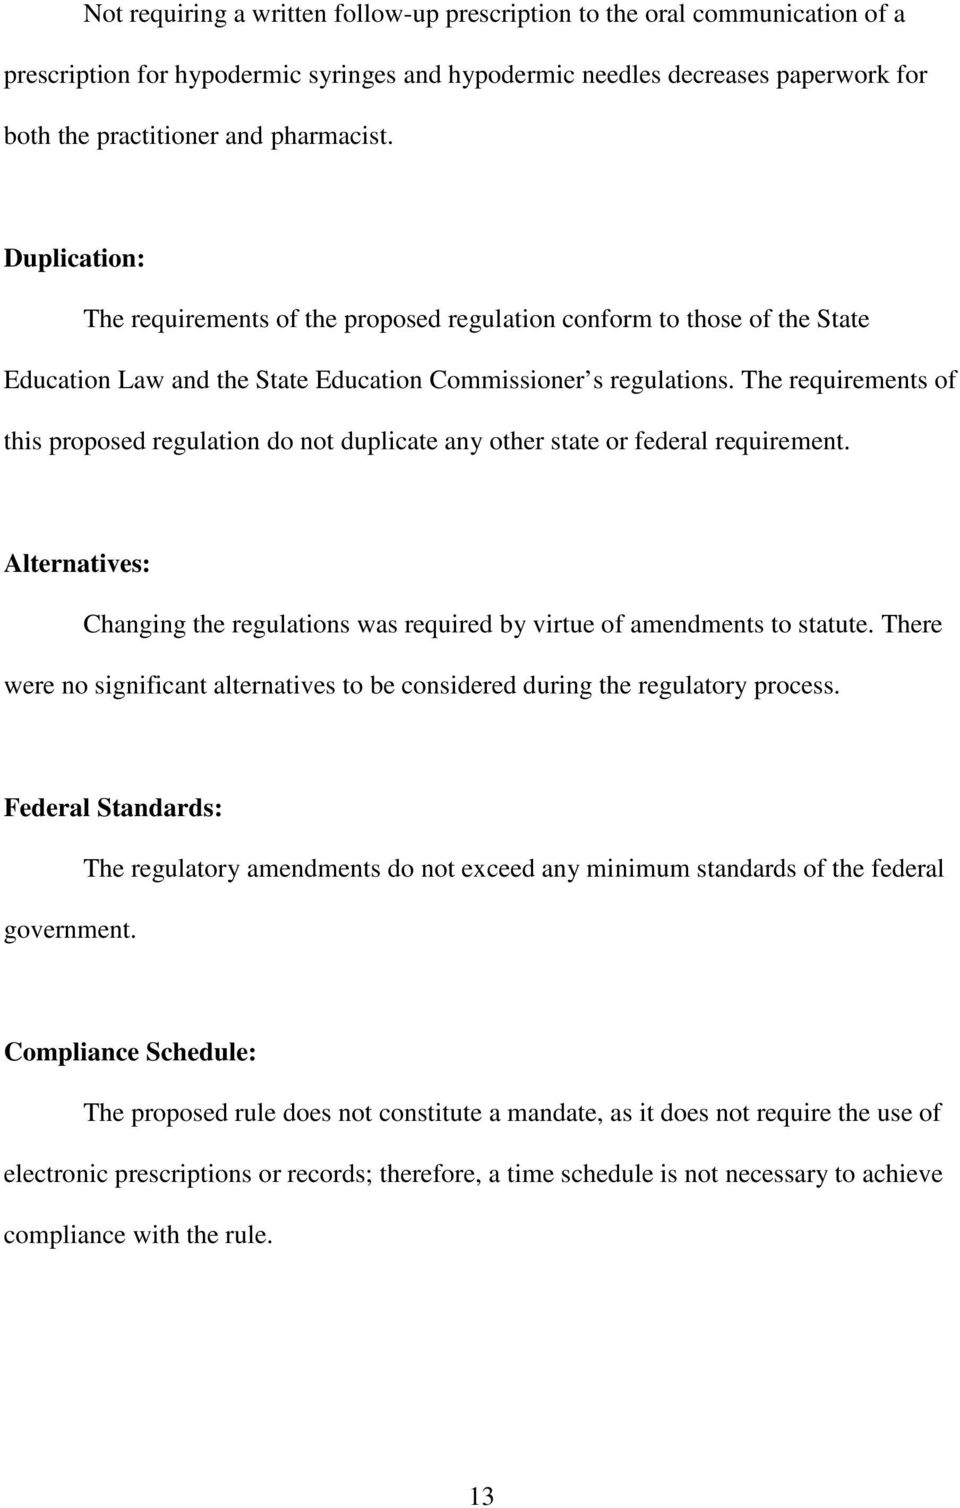 The requirements of this proposed regulation do not duplicate any other state or federal requirement. Alternatives: Changing the regulations was required by virtue of amendments to statute.